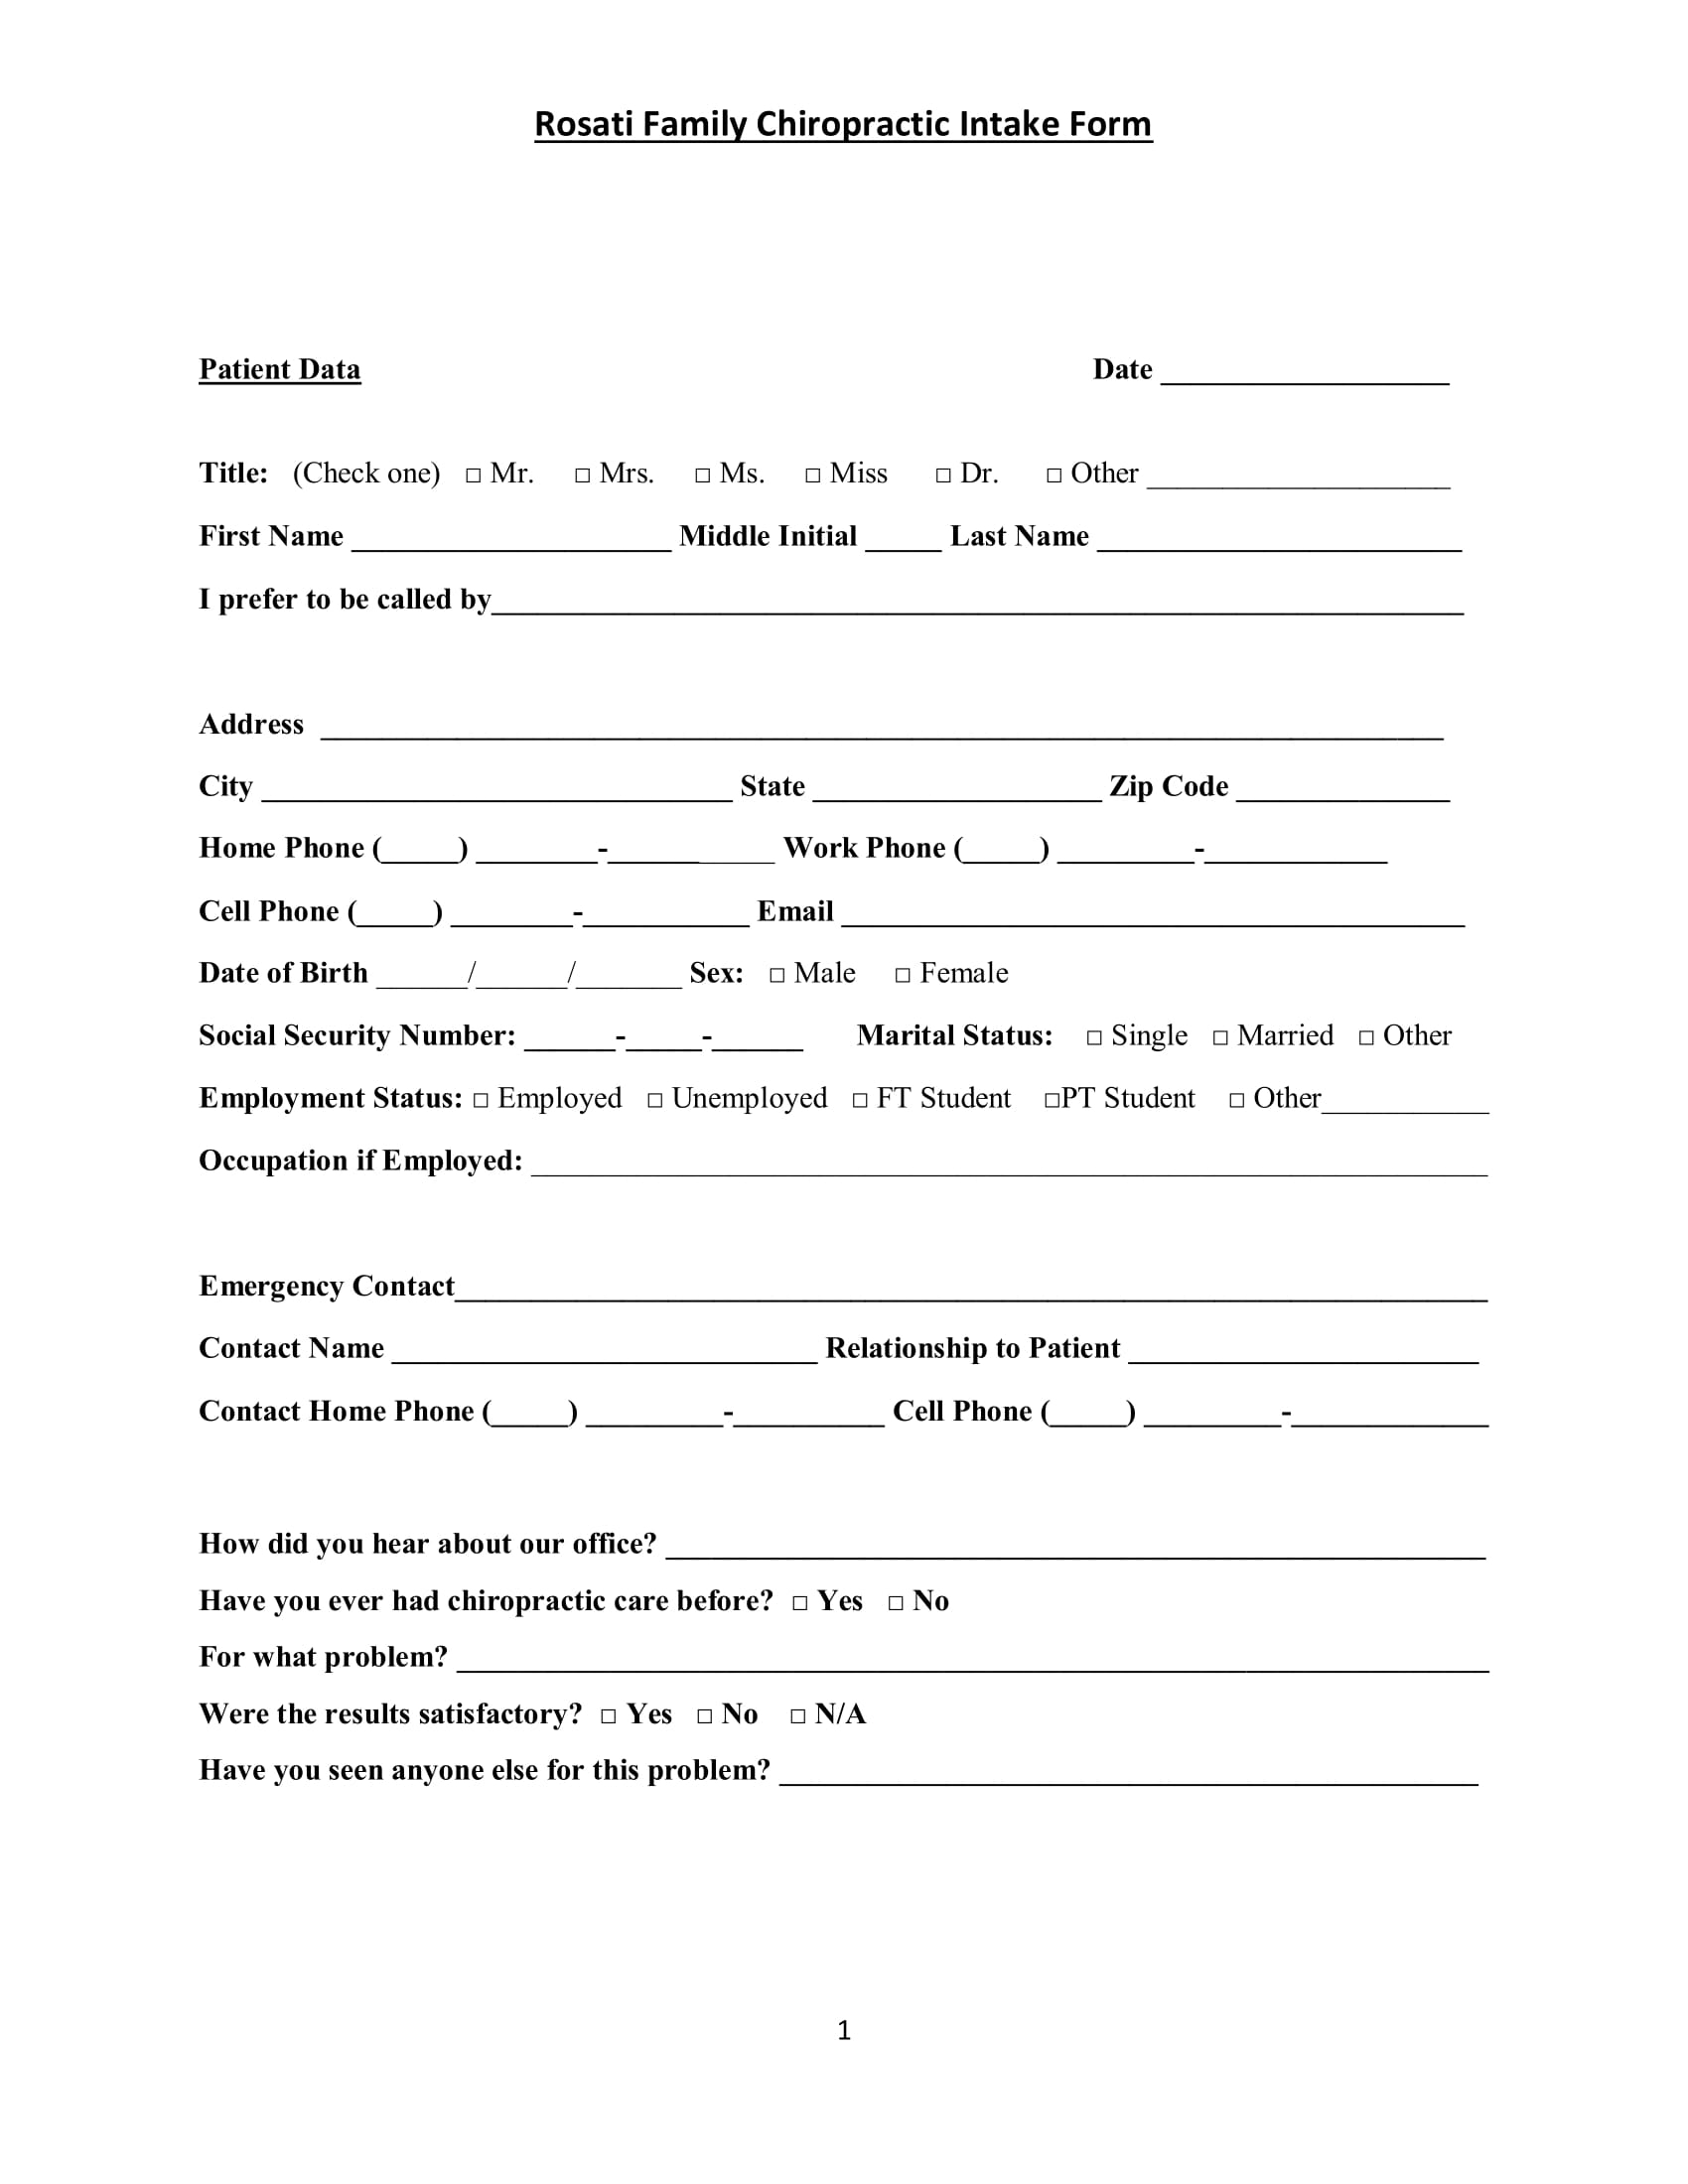 family chiropractic intake form 01